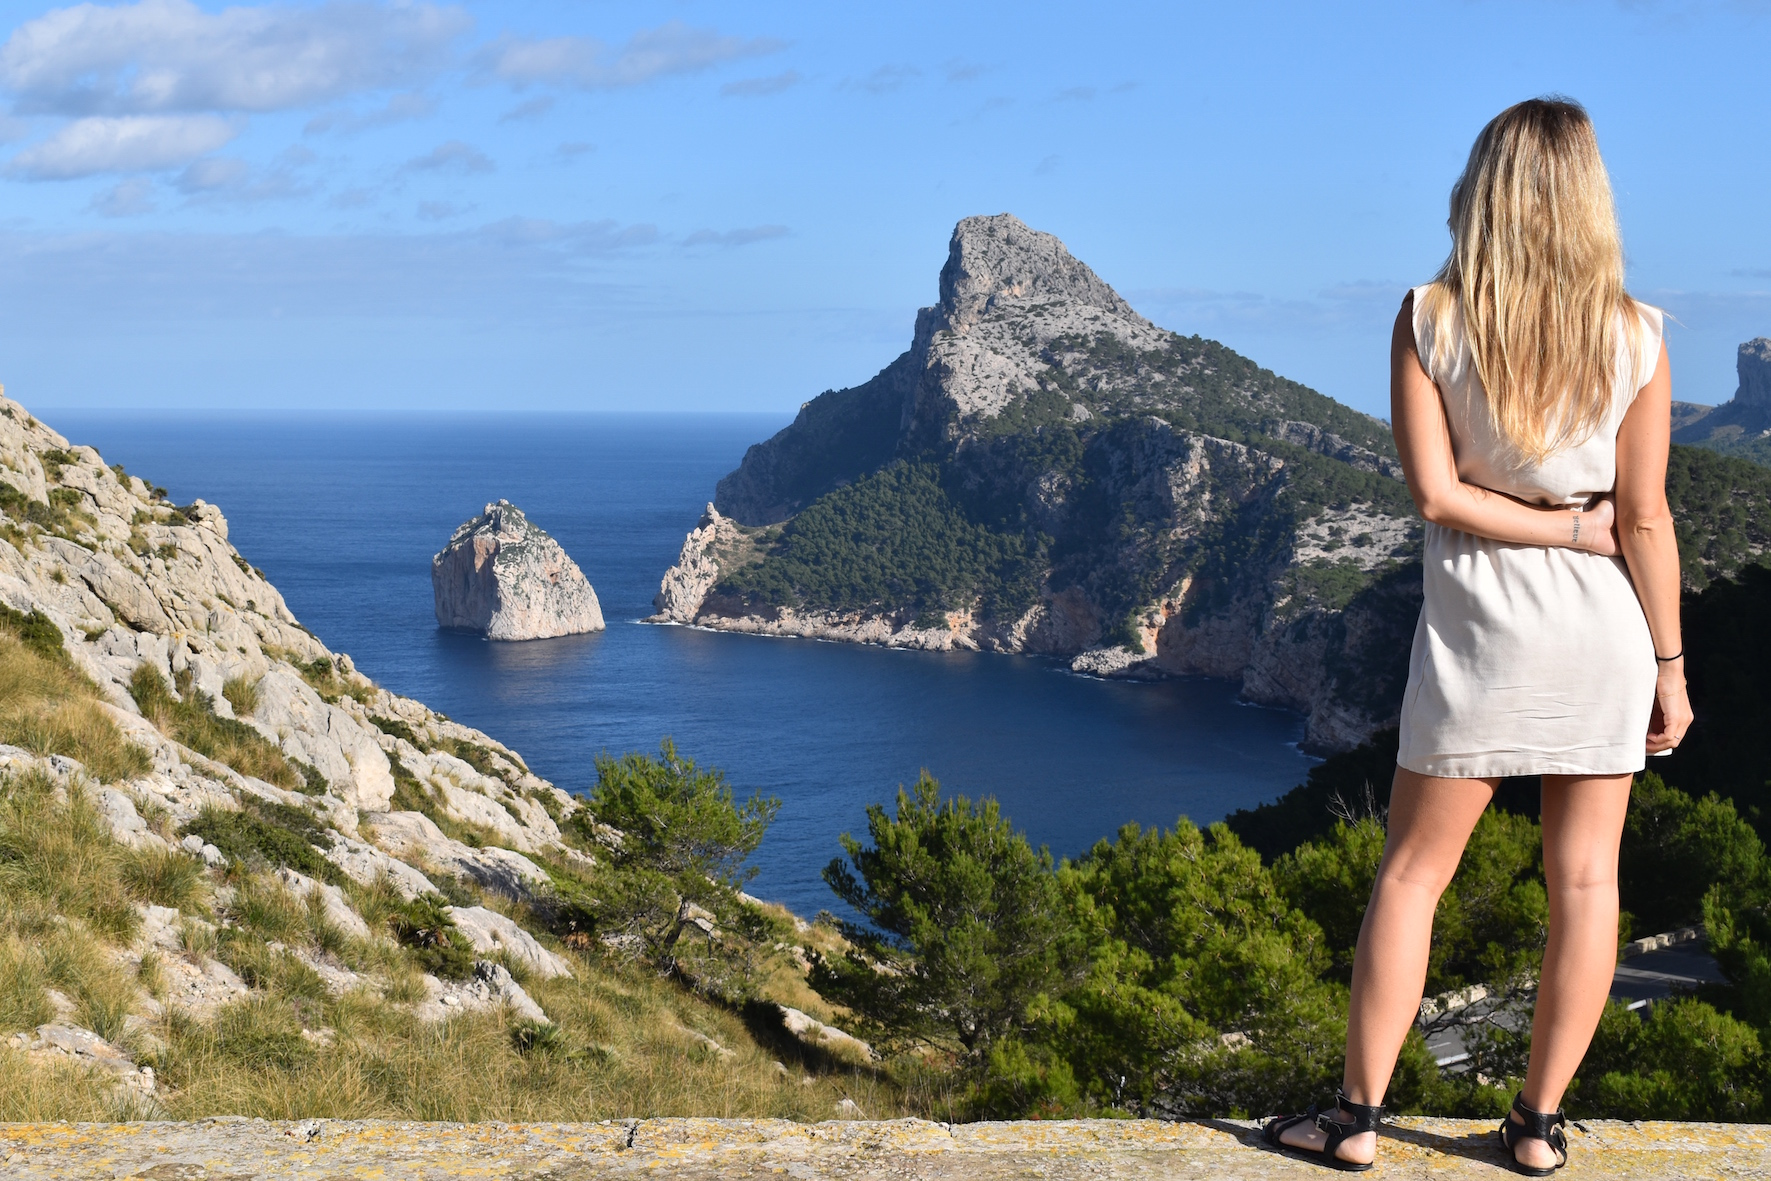 How To Spend 3 Days On The Island Of Mallorca